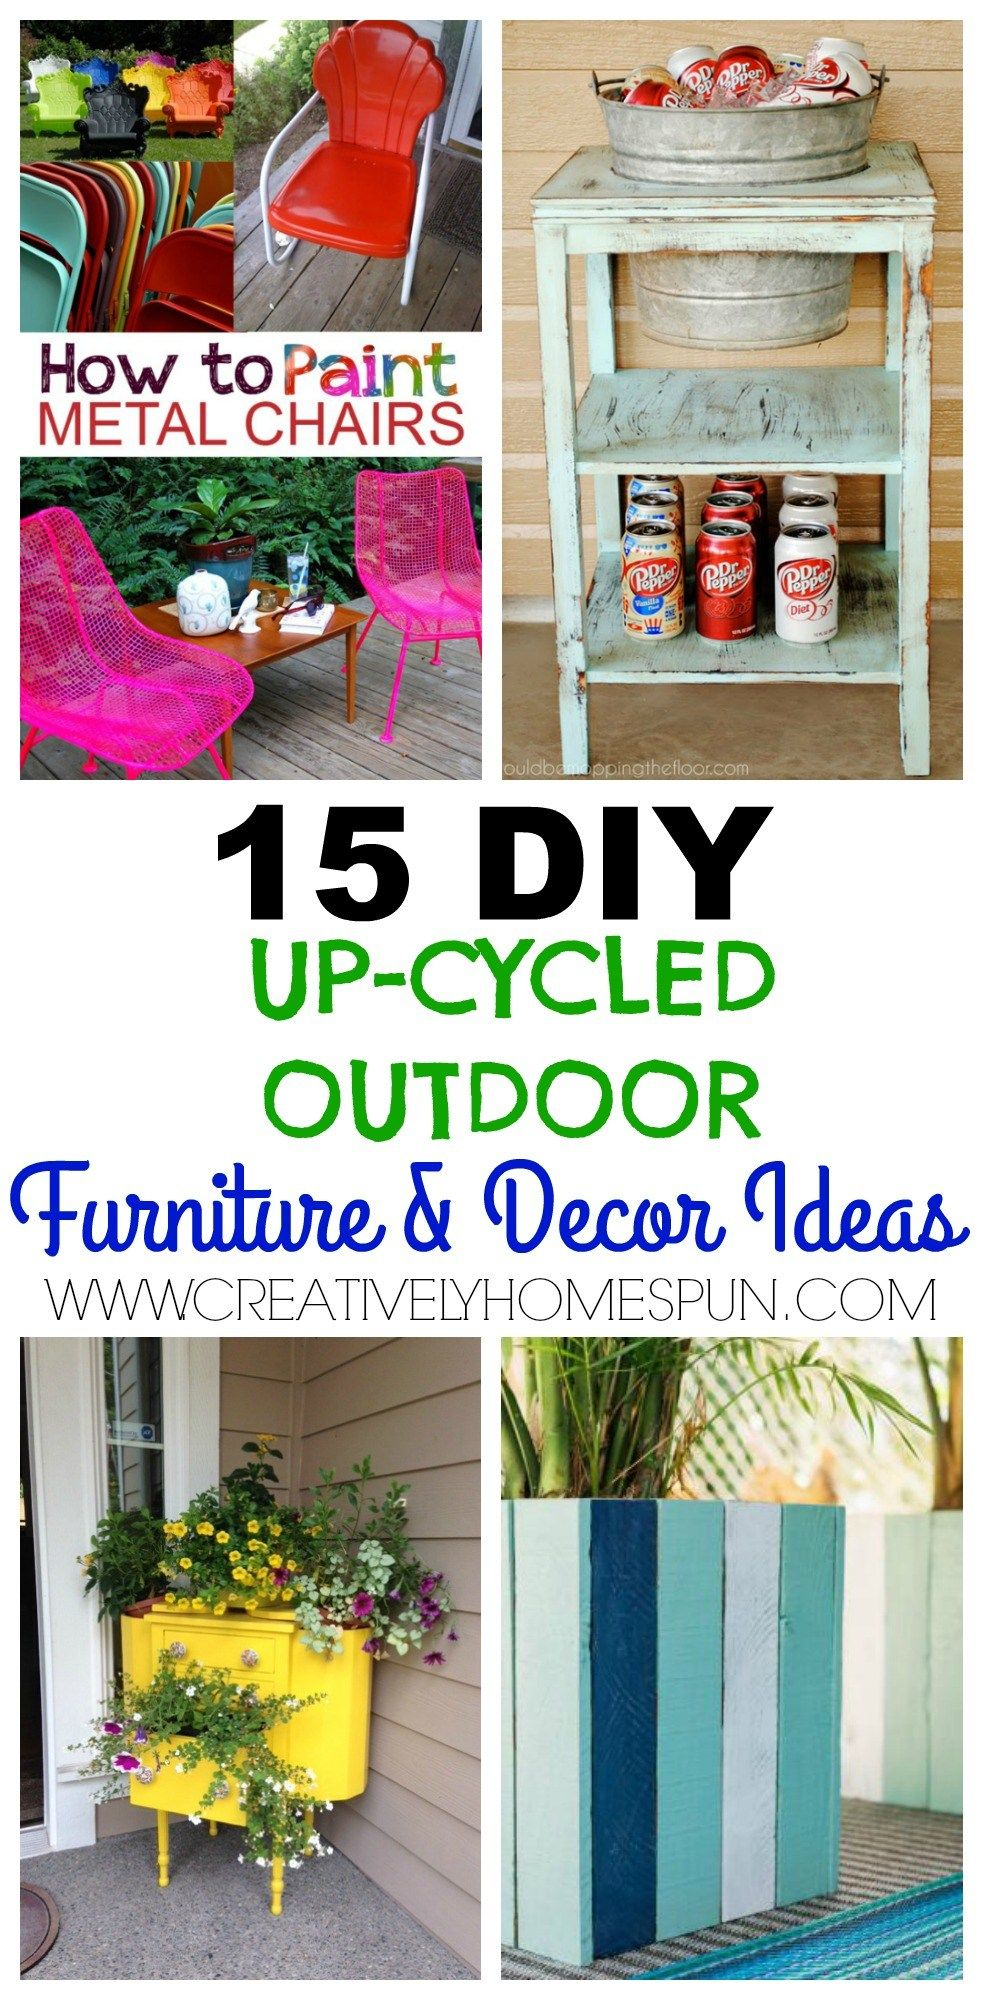 15 Diy Up Cycled Outdoor Furniture And Decor Ideas #Outdoorfurniture #Outdoordecor